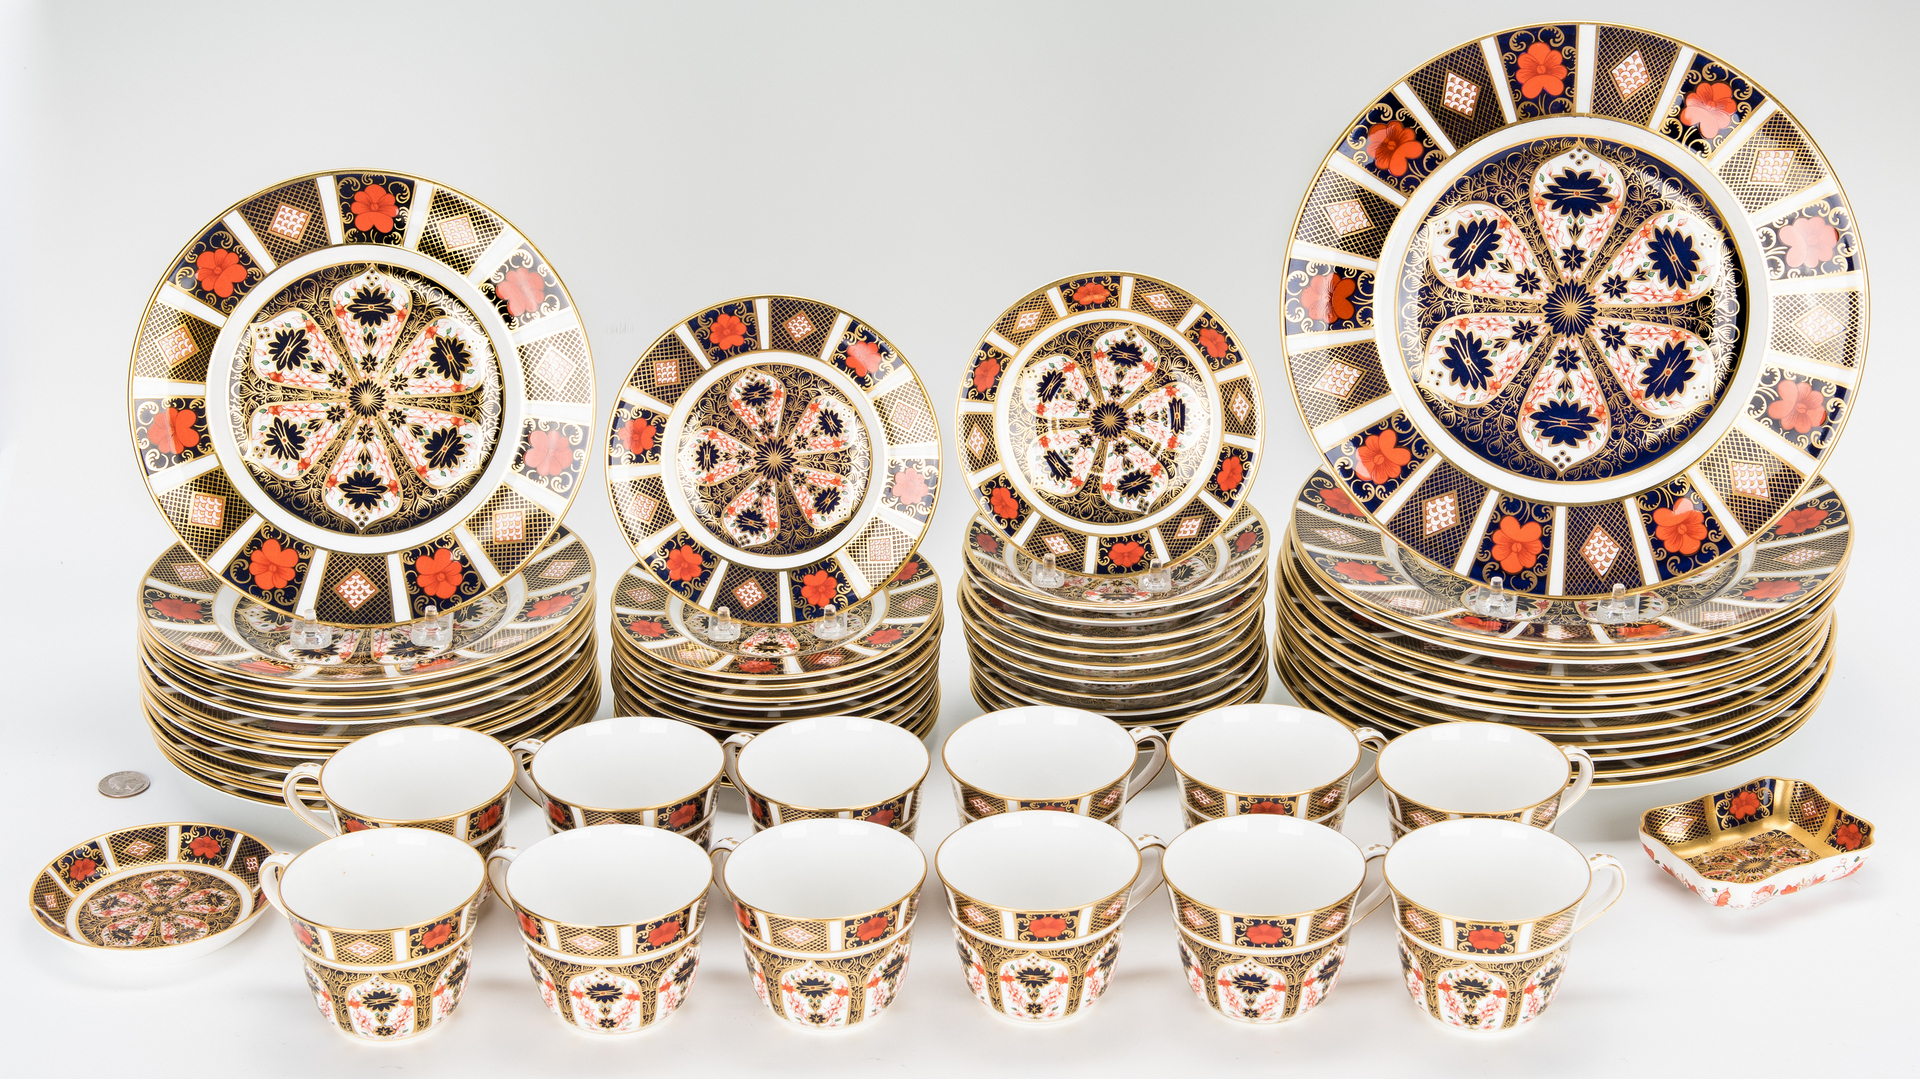 Lot 251: 62 Pcs. Royal Crown Derby Old Imari Dinnerware